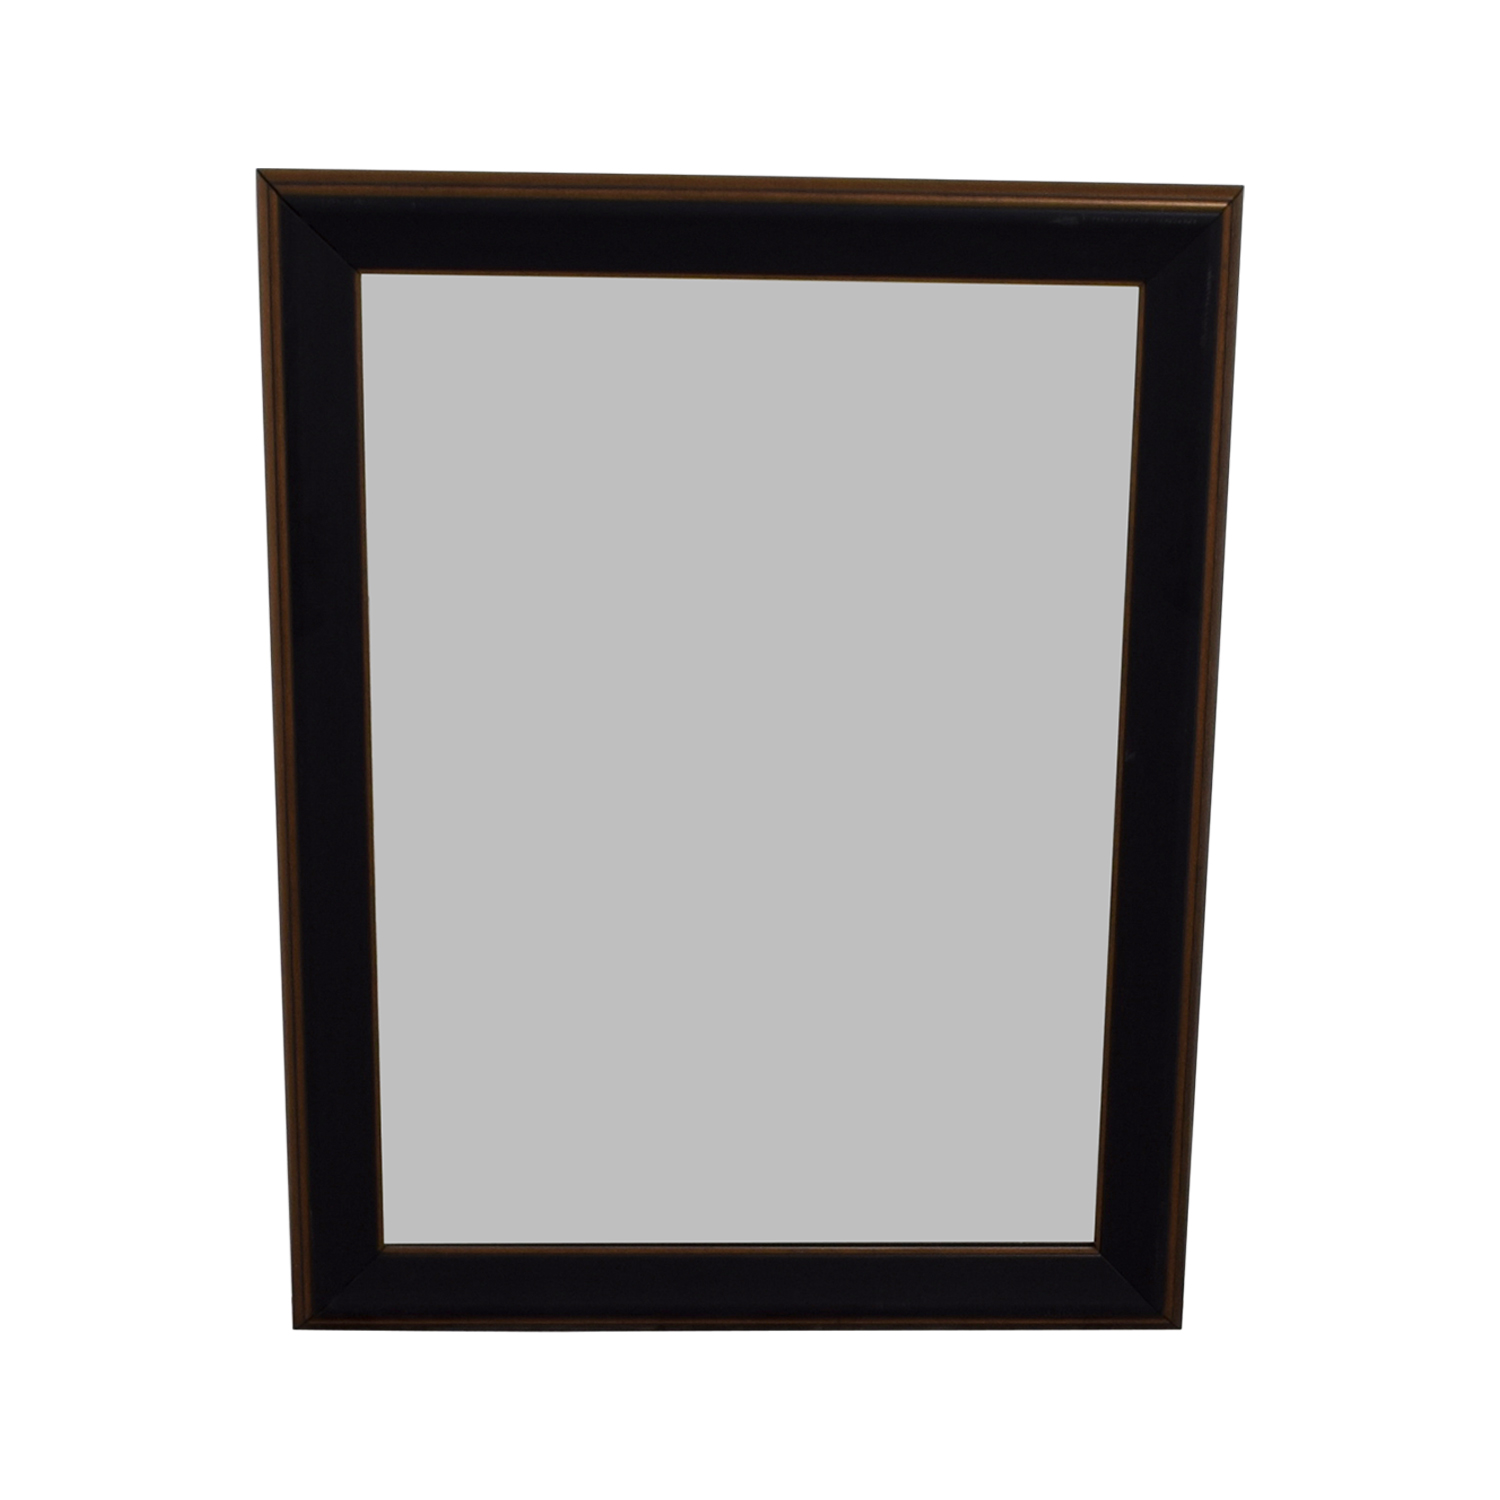 Wood Framed Mirror nj